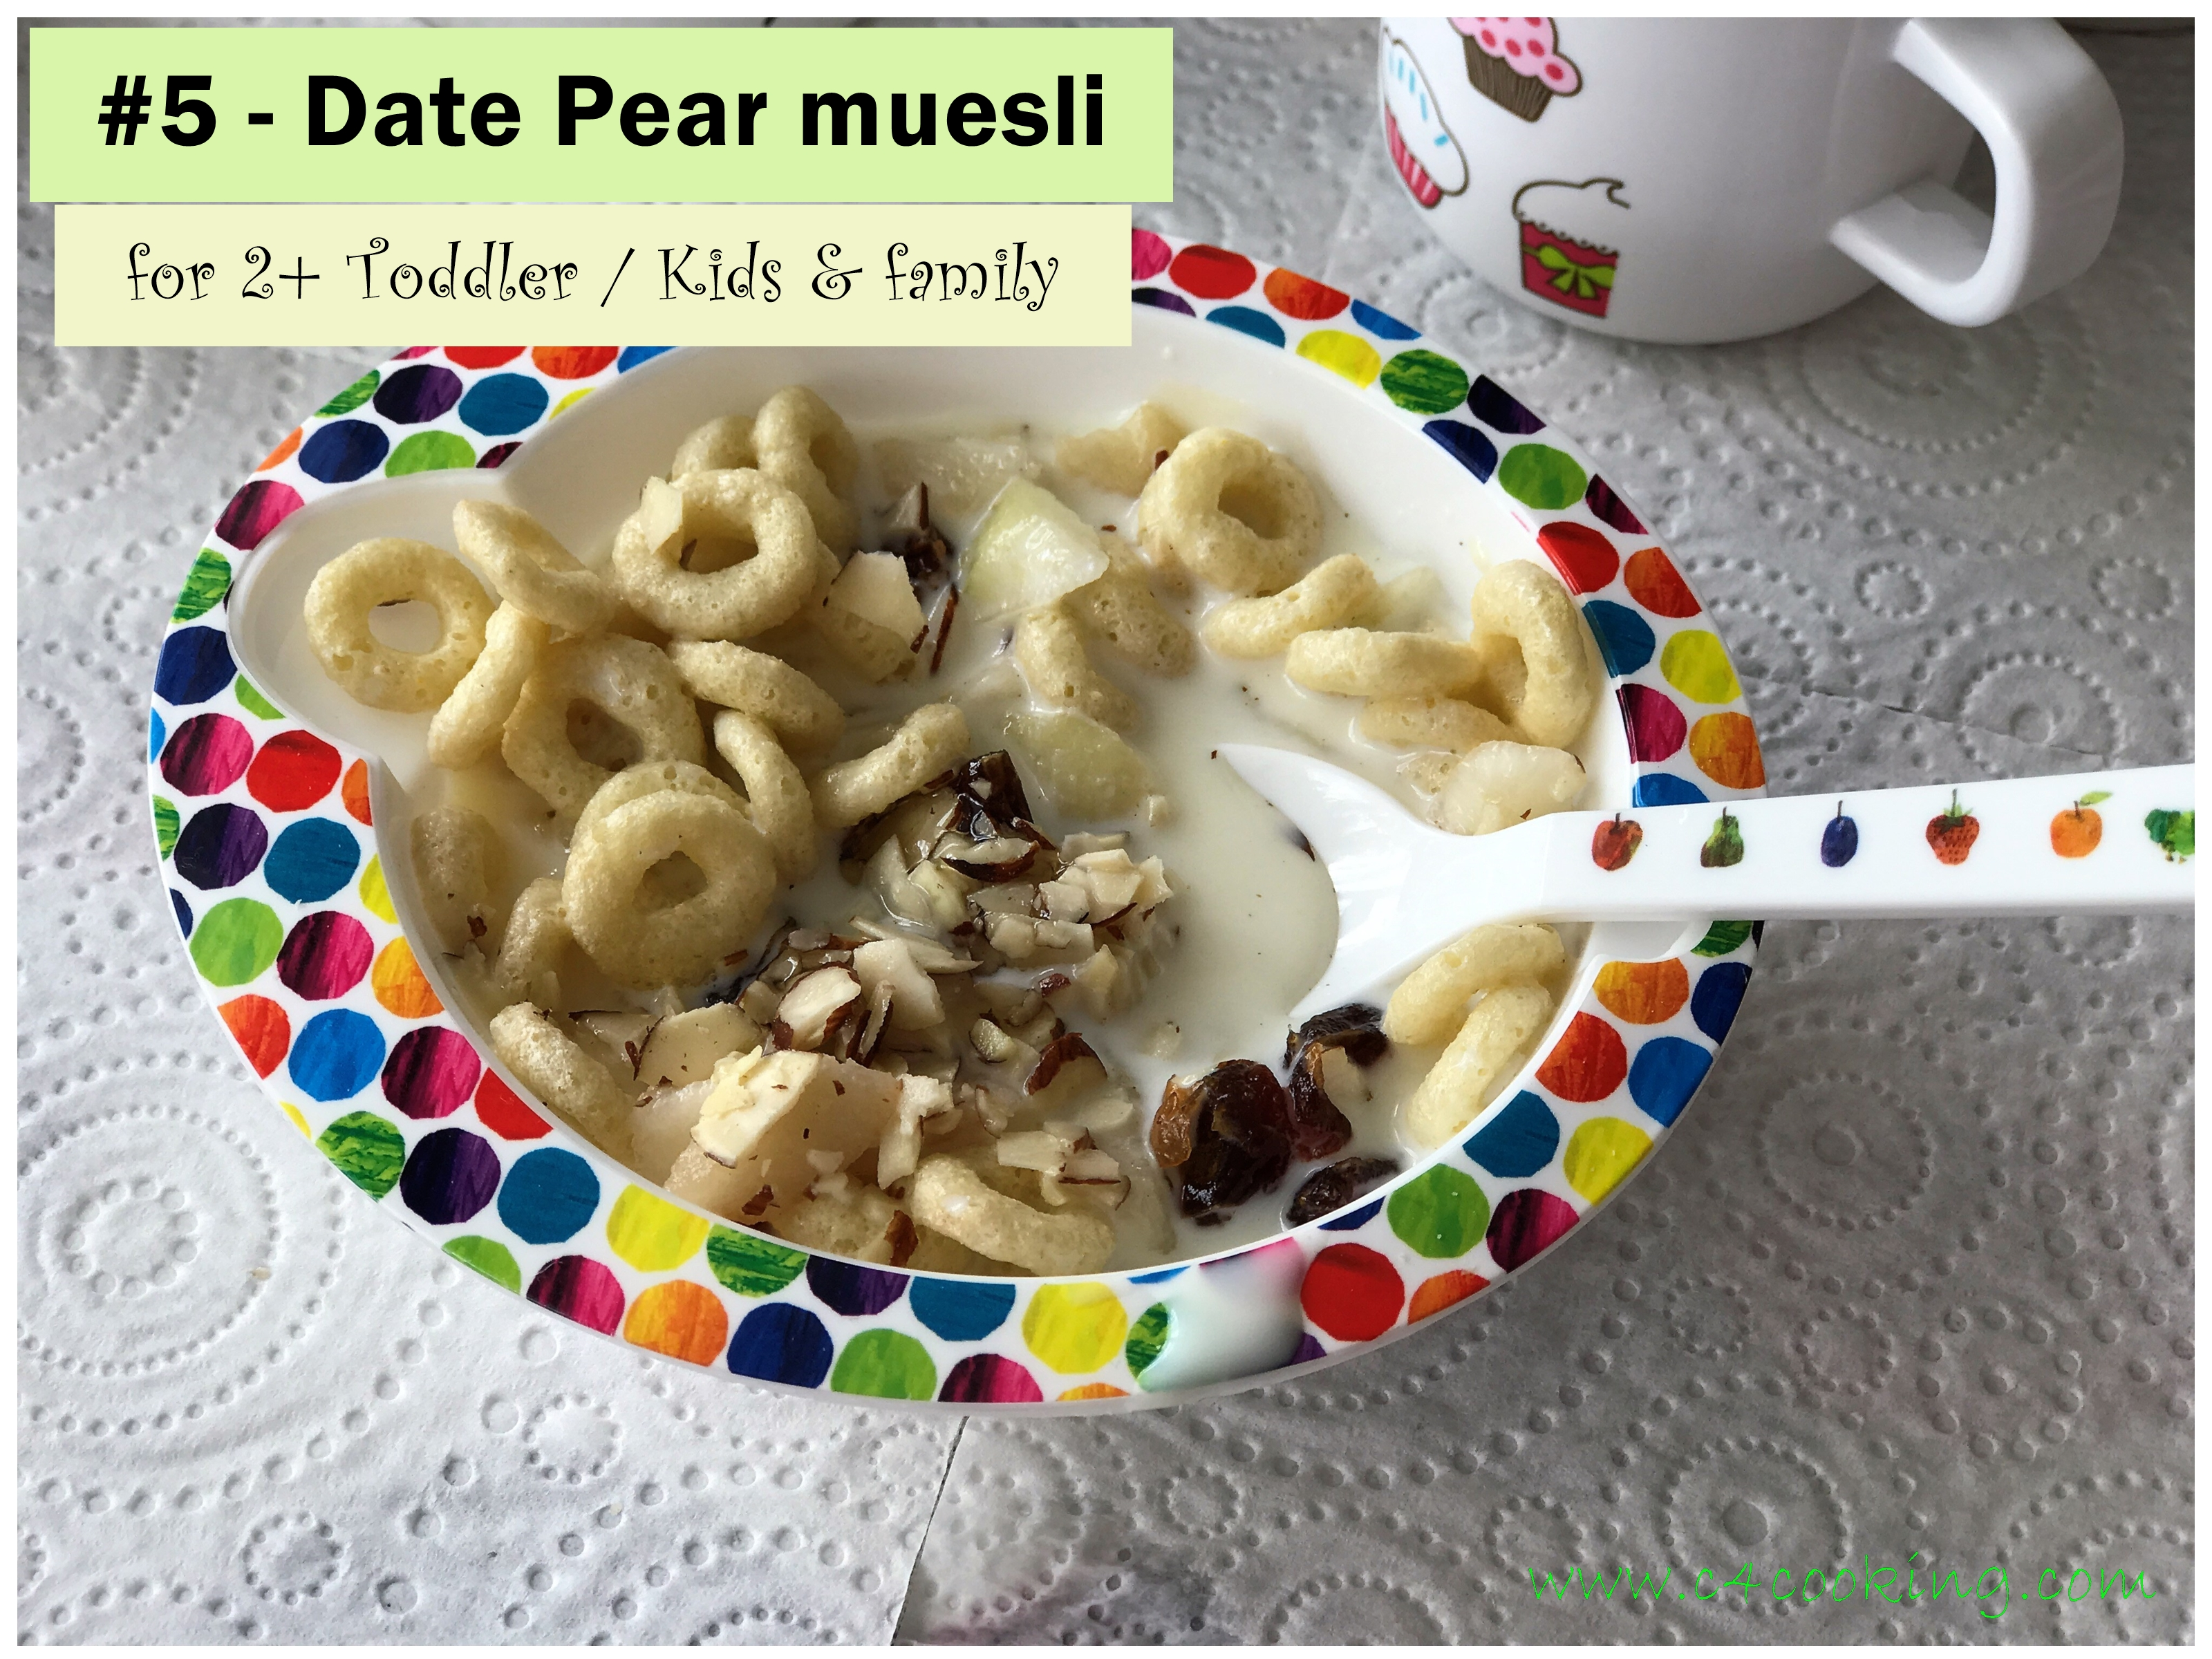 Date Pear muesli recipe